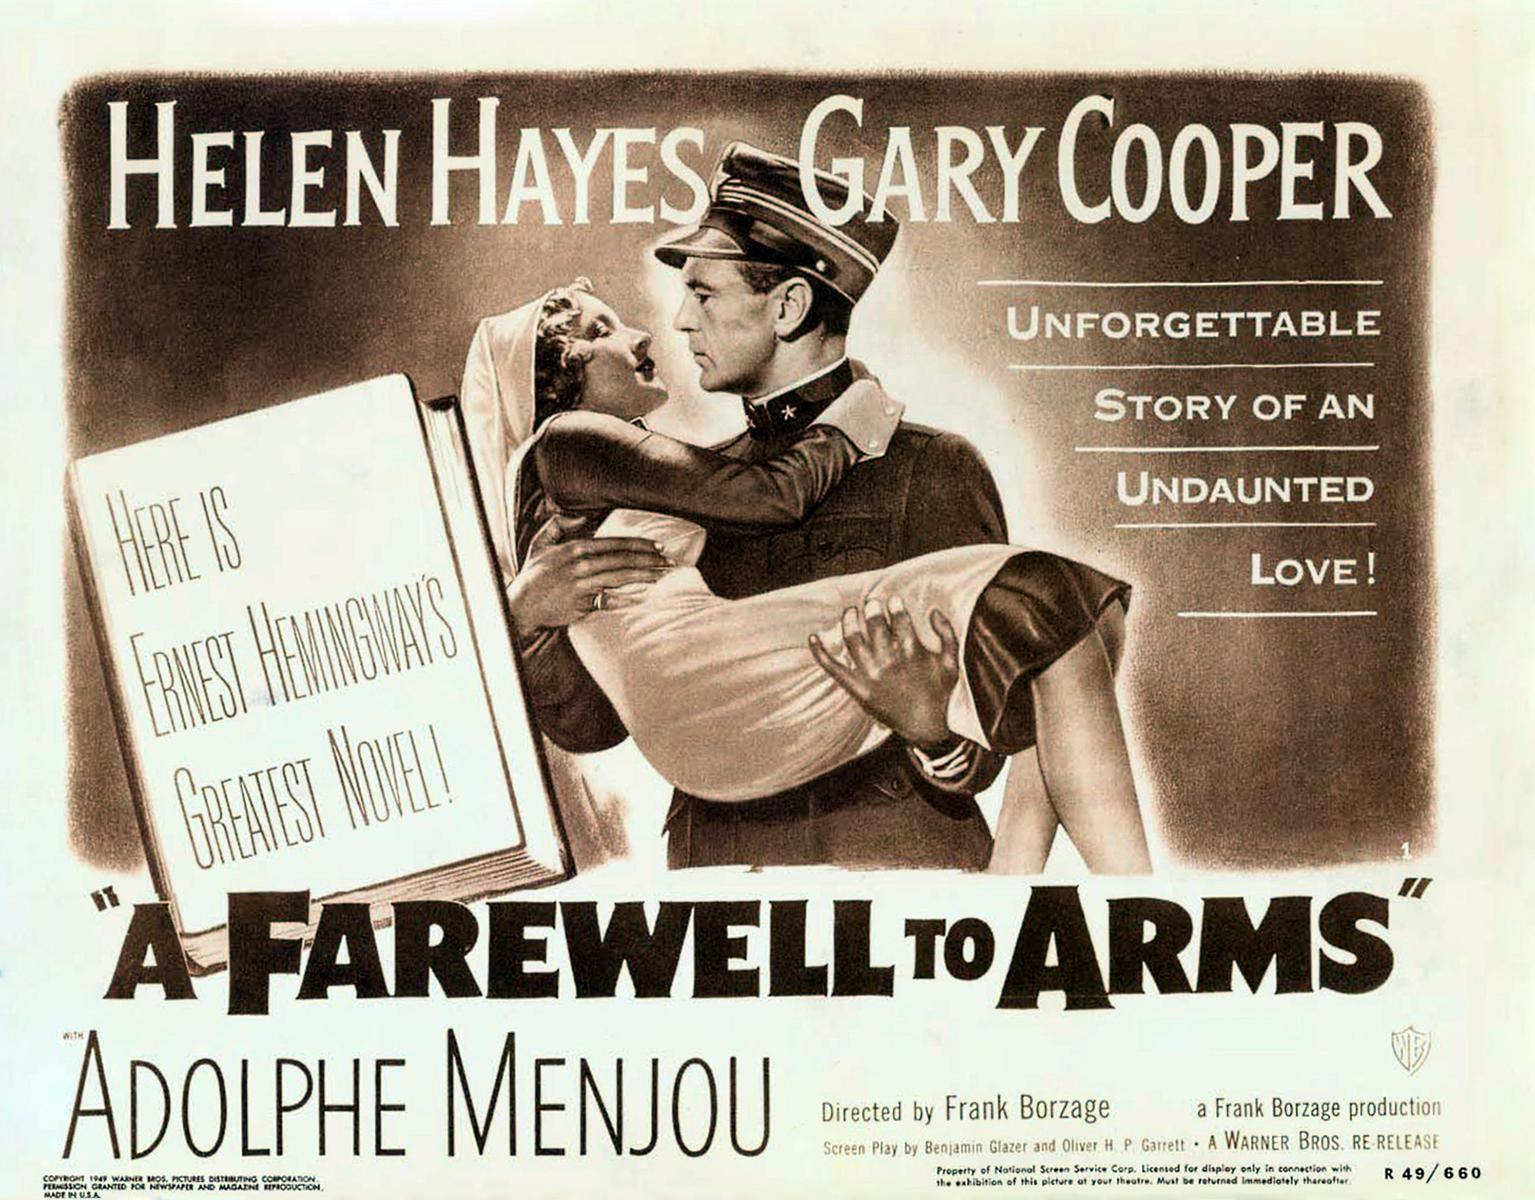 a farewell to arms essay on love I prefer the love portrayed in a farewell to arms for these reasons ensure you write concisely and keep referring to the essay question.